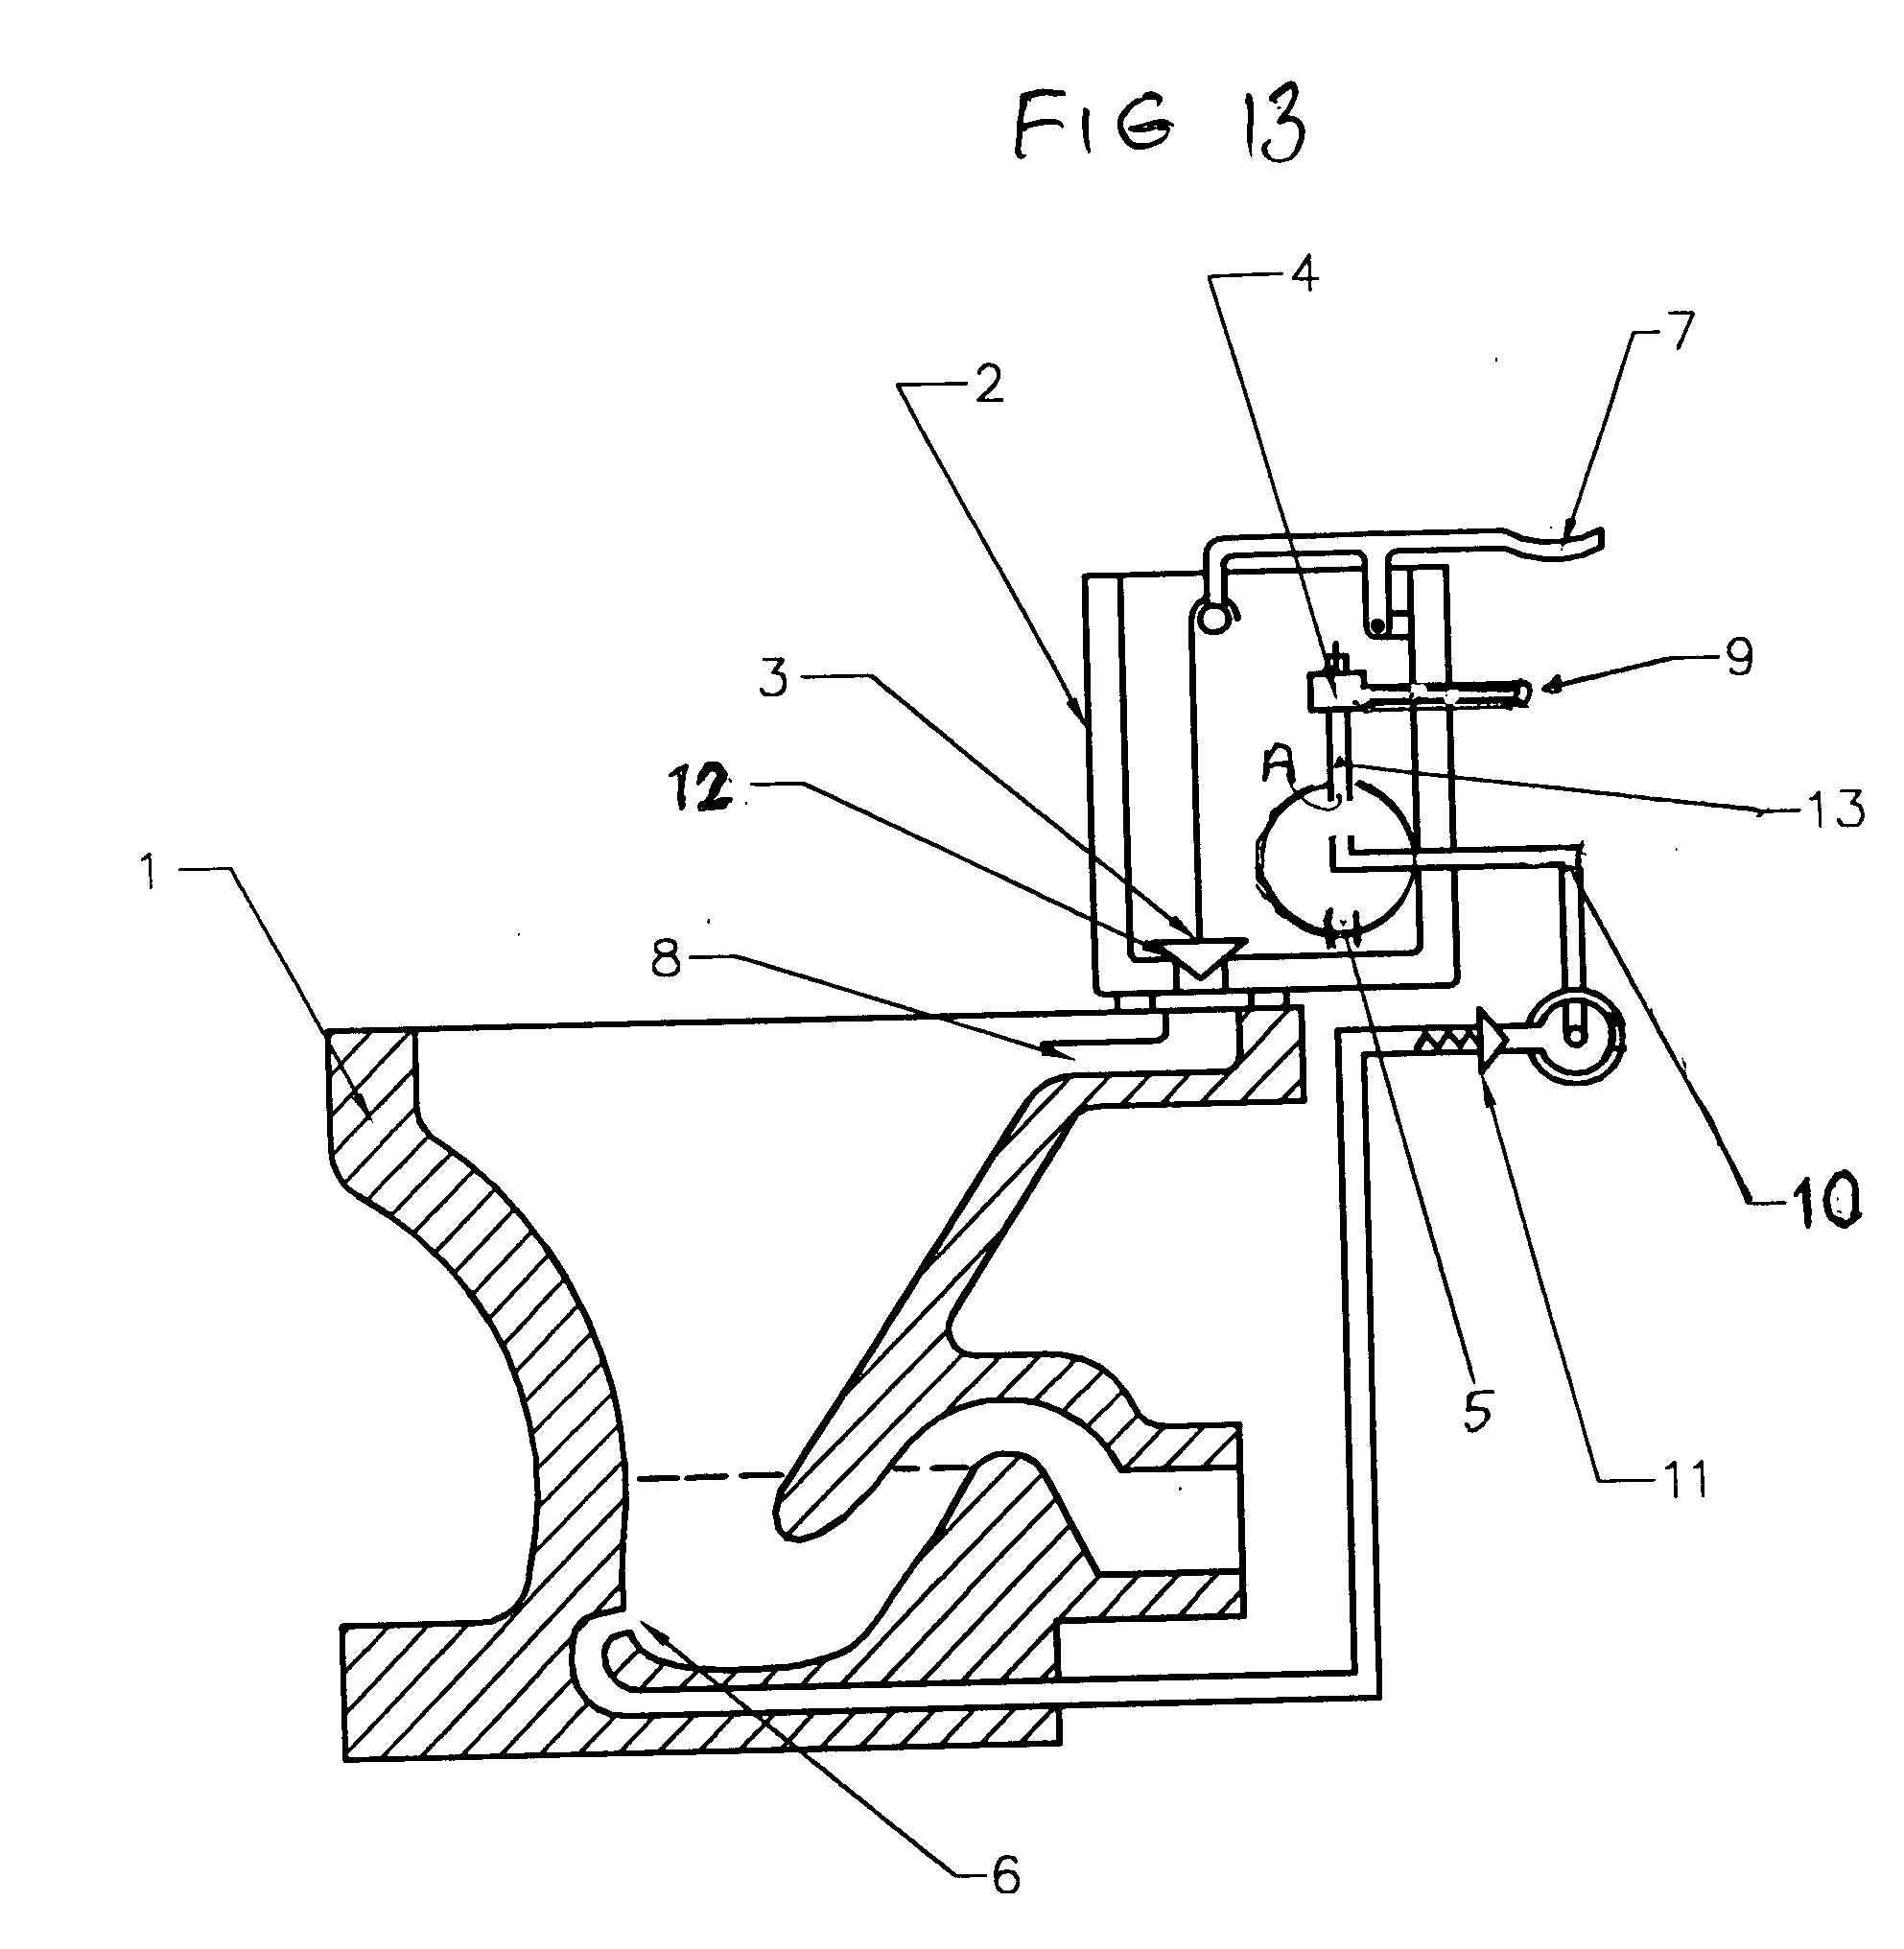 Patent us20050028263 water and space conservation toiletbidet us20050028263a1 20050210 d00012 us20050028263 tear drop toilet plunger diagram